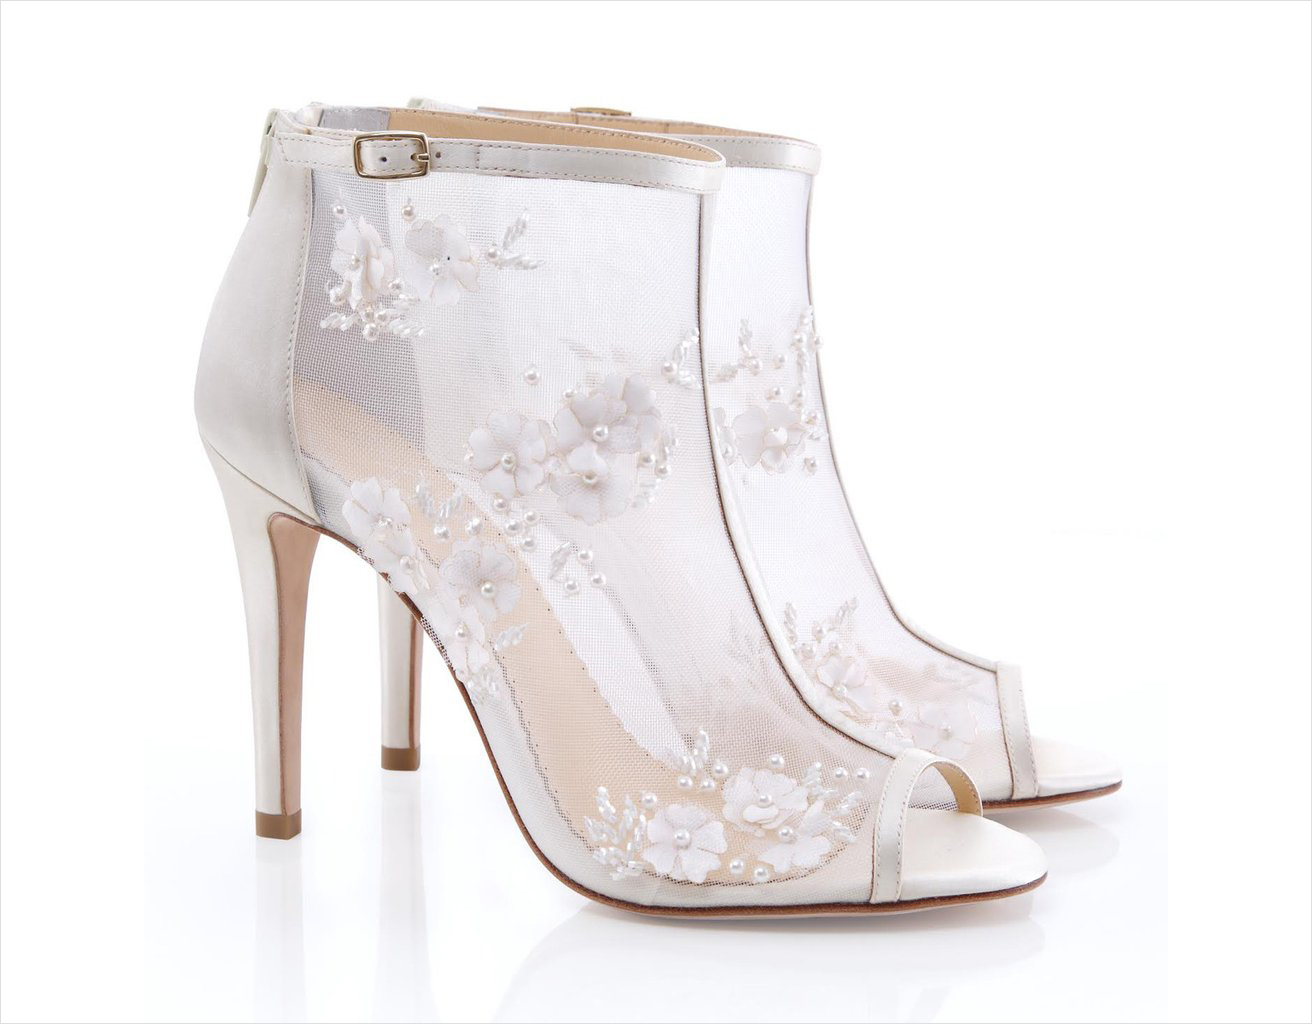 Belle by Joy Proctor wedding shoes white booties lace peep toe mesh